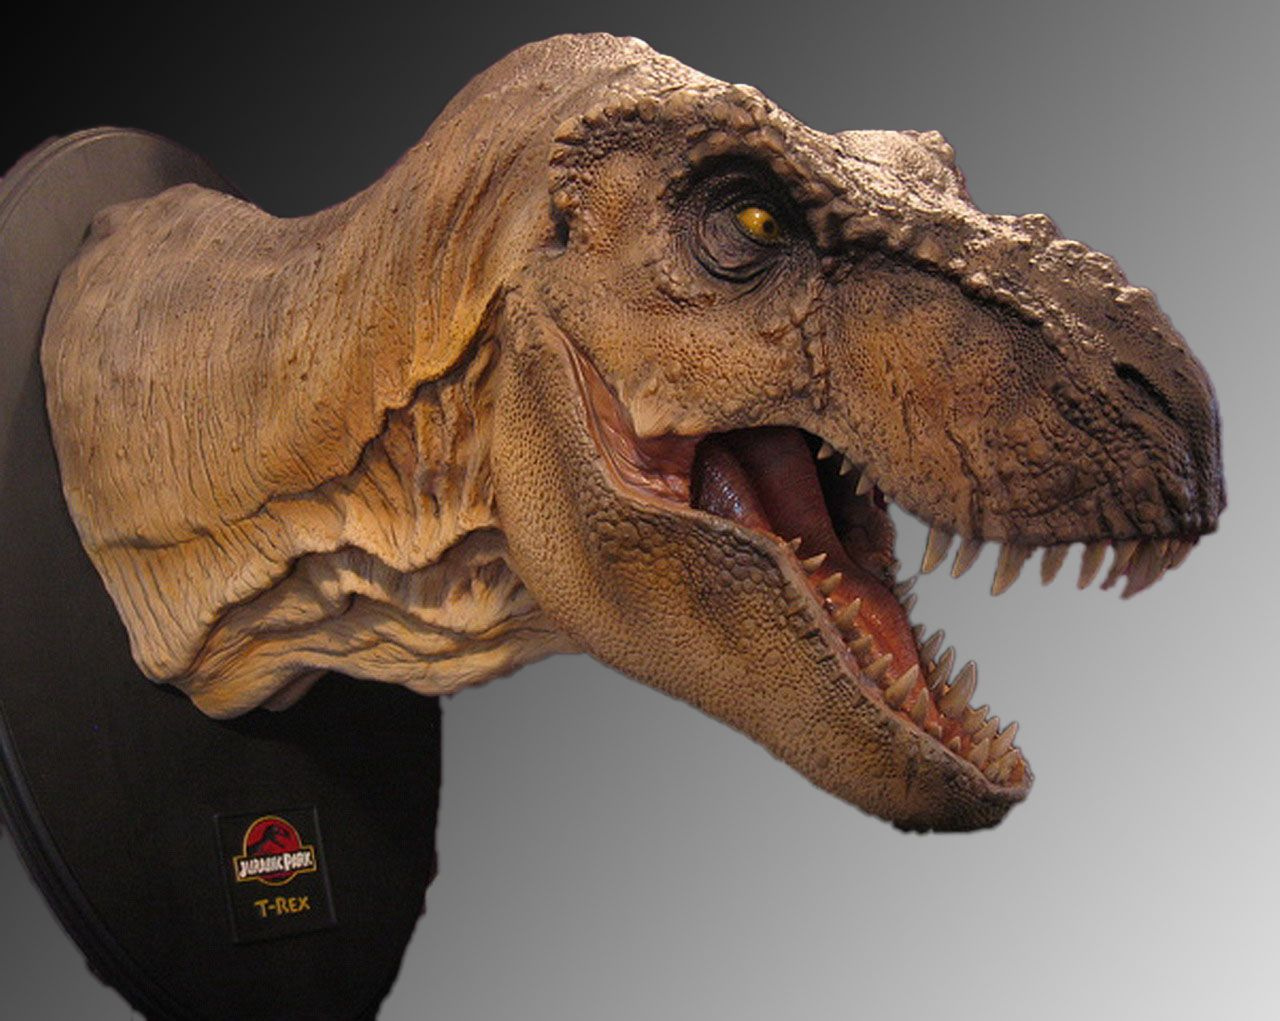 New Jurassic Park 1/5 T-Rex Bust - Page 4 - Statue Forum ...